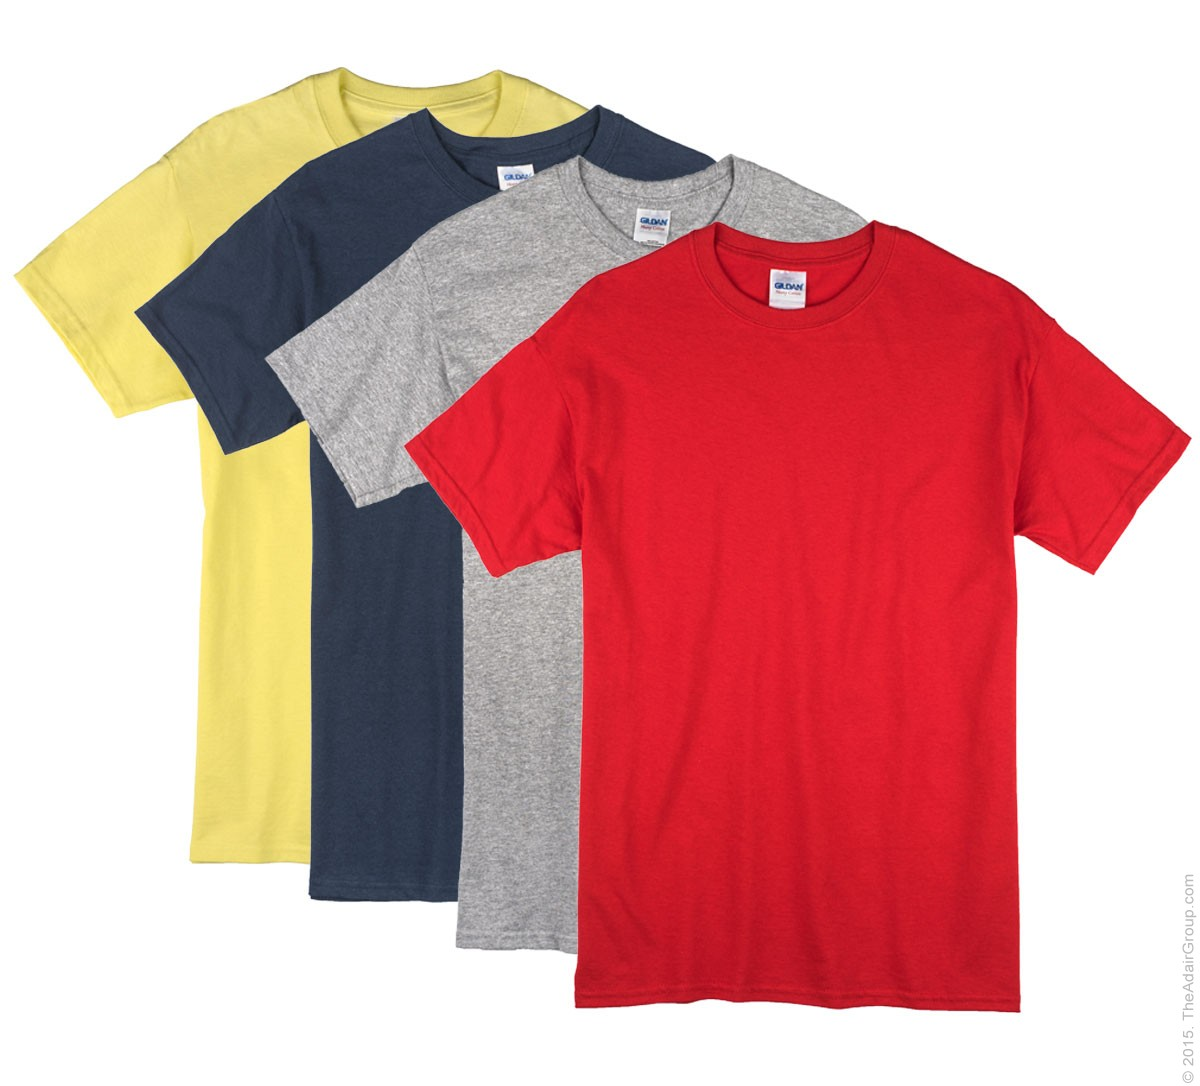 Cheap Irregular T-Shirts Online from Adair Group